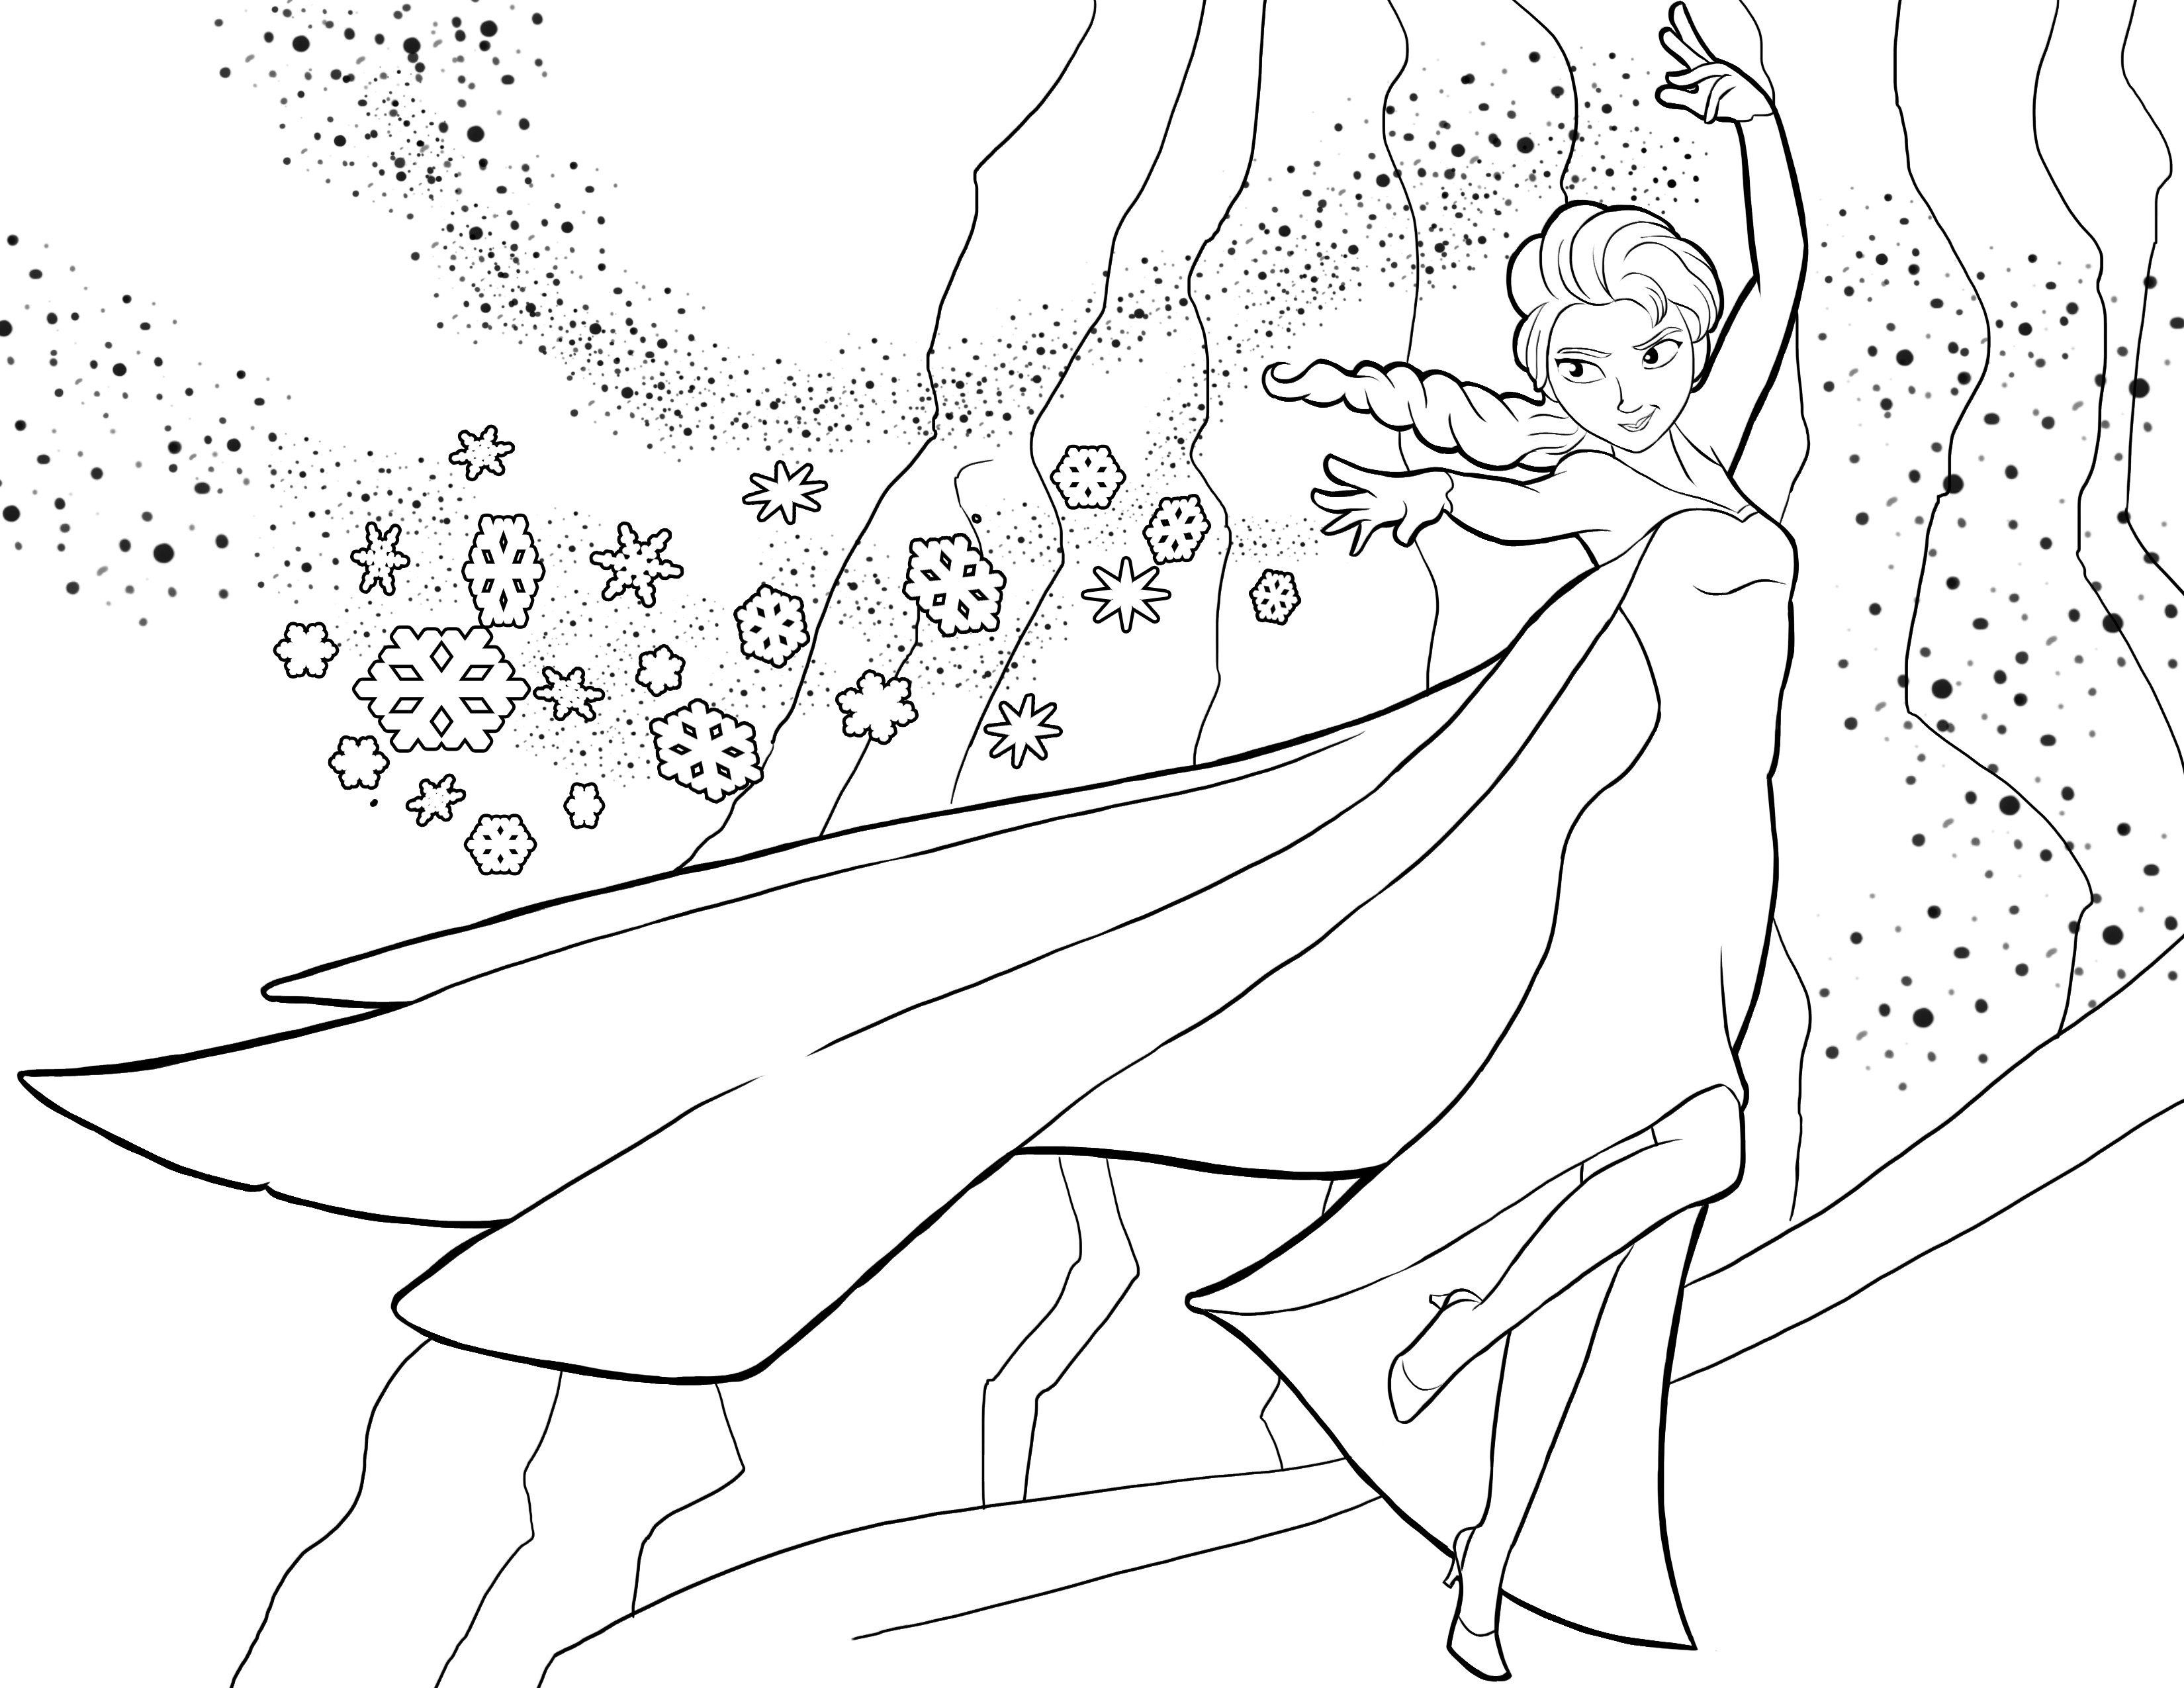 Disegni da colorare Frozen 1 | Disney and coloring pages | Pinterest ...